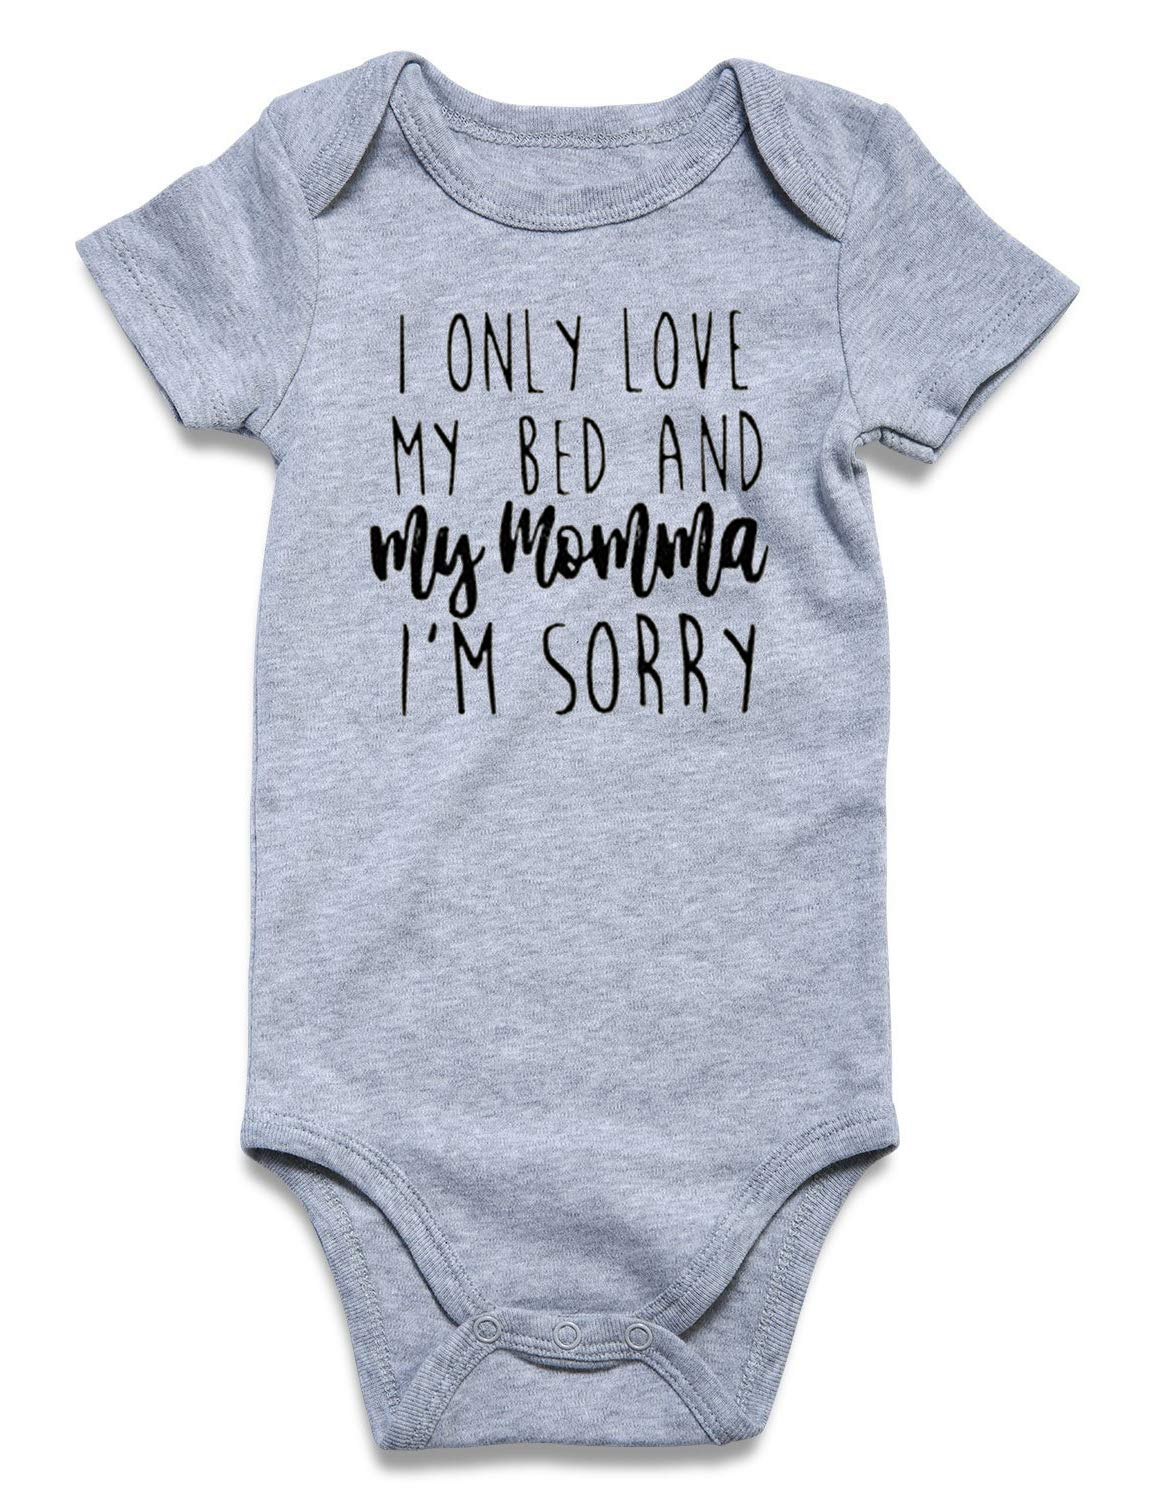 BFUSTYLE Funny Onesies Girl I Only Love My Bed and My Momma Im Sorry Outfits, Halloween Christmas Baby Gift